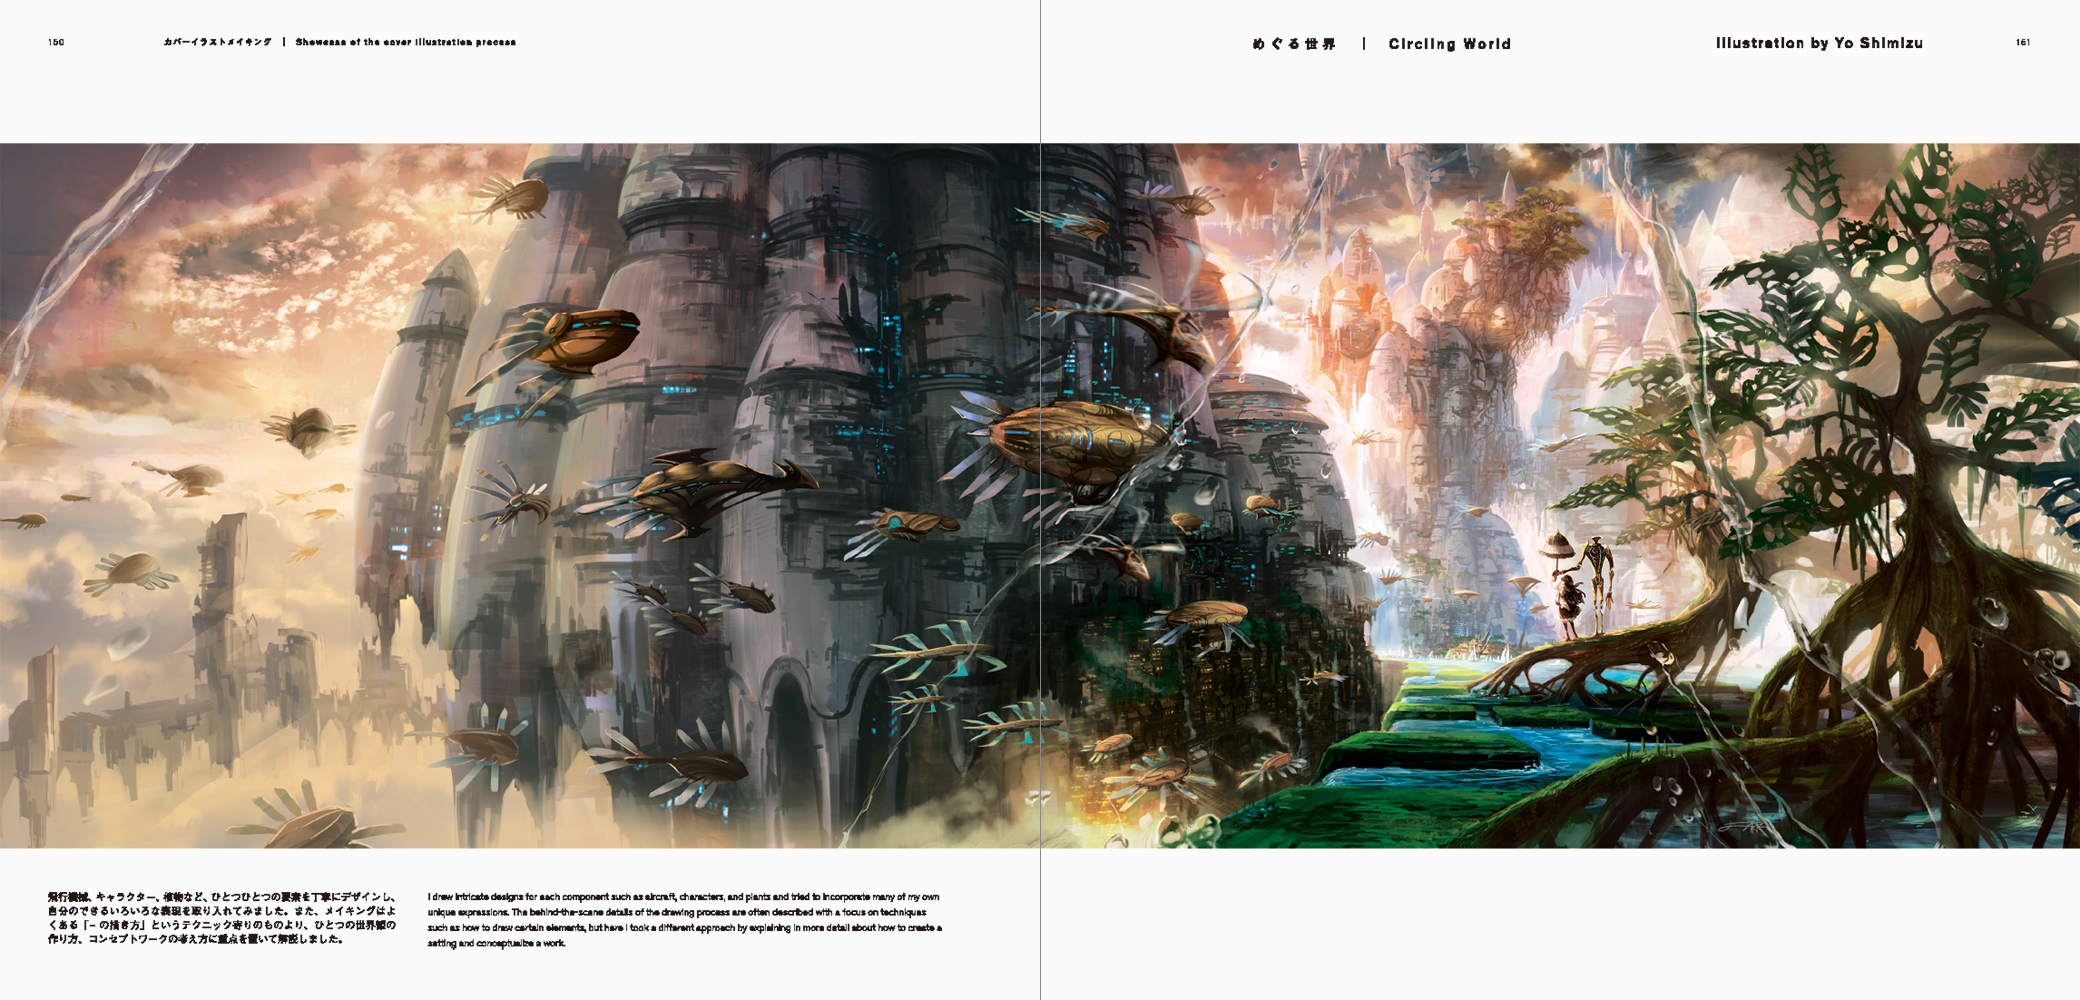 beautiful scenes from a fantasy world: background illustrations and